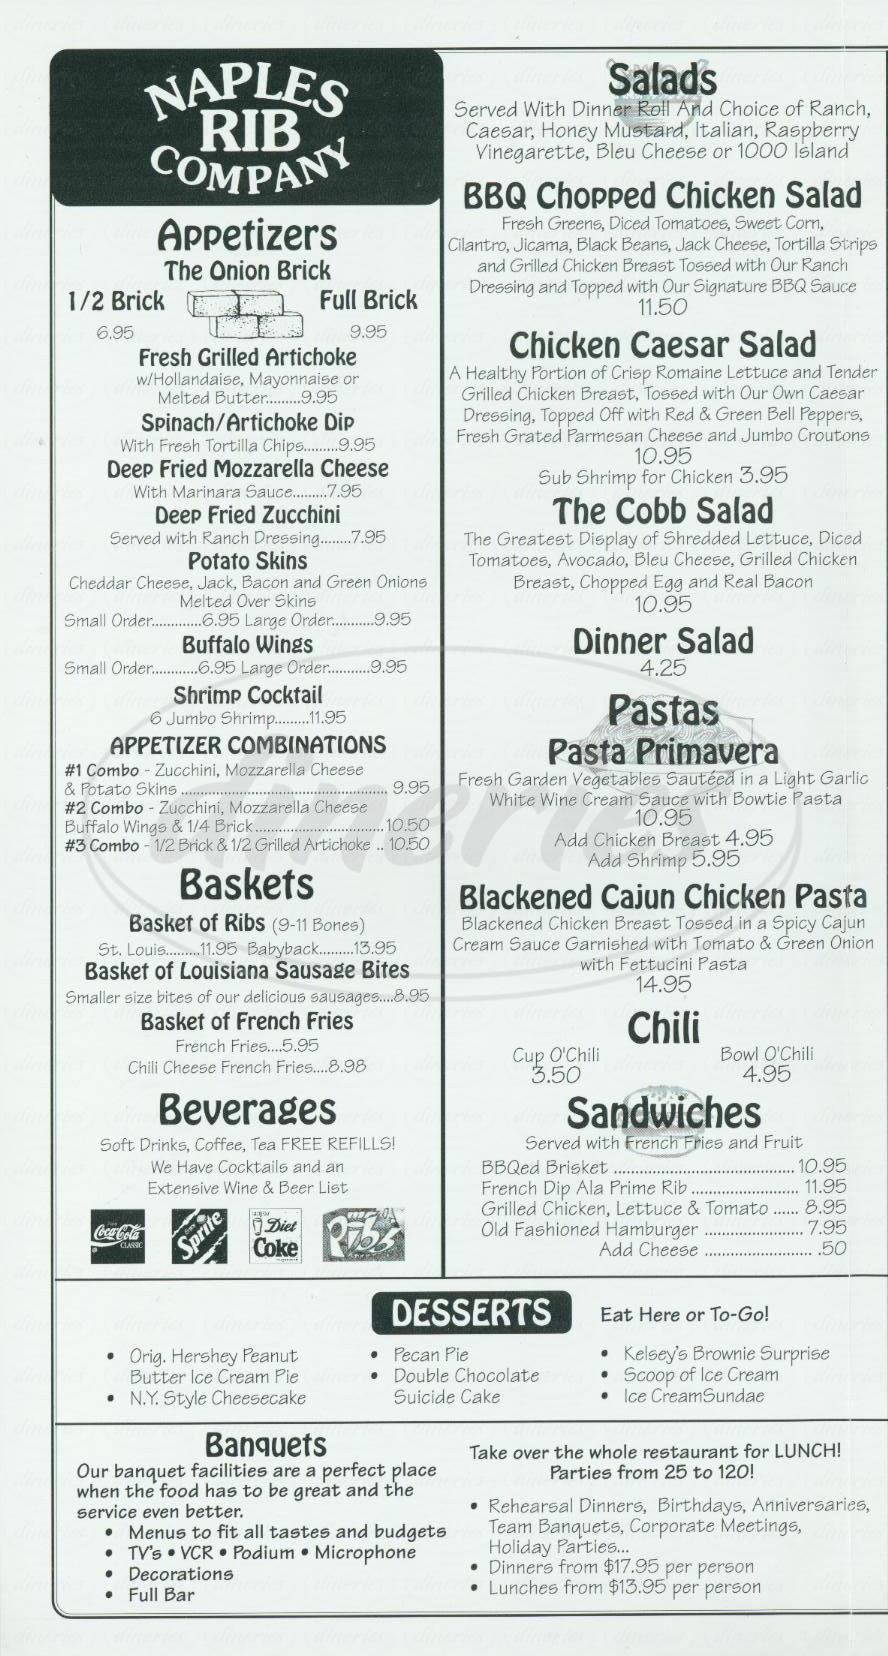 menu for Naples Rib Company